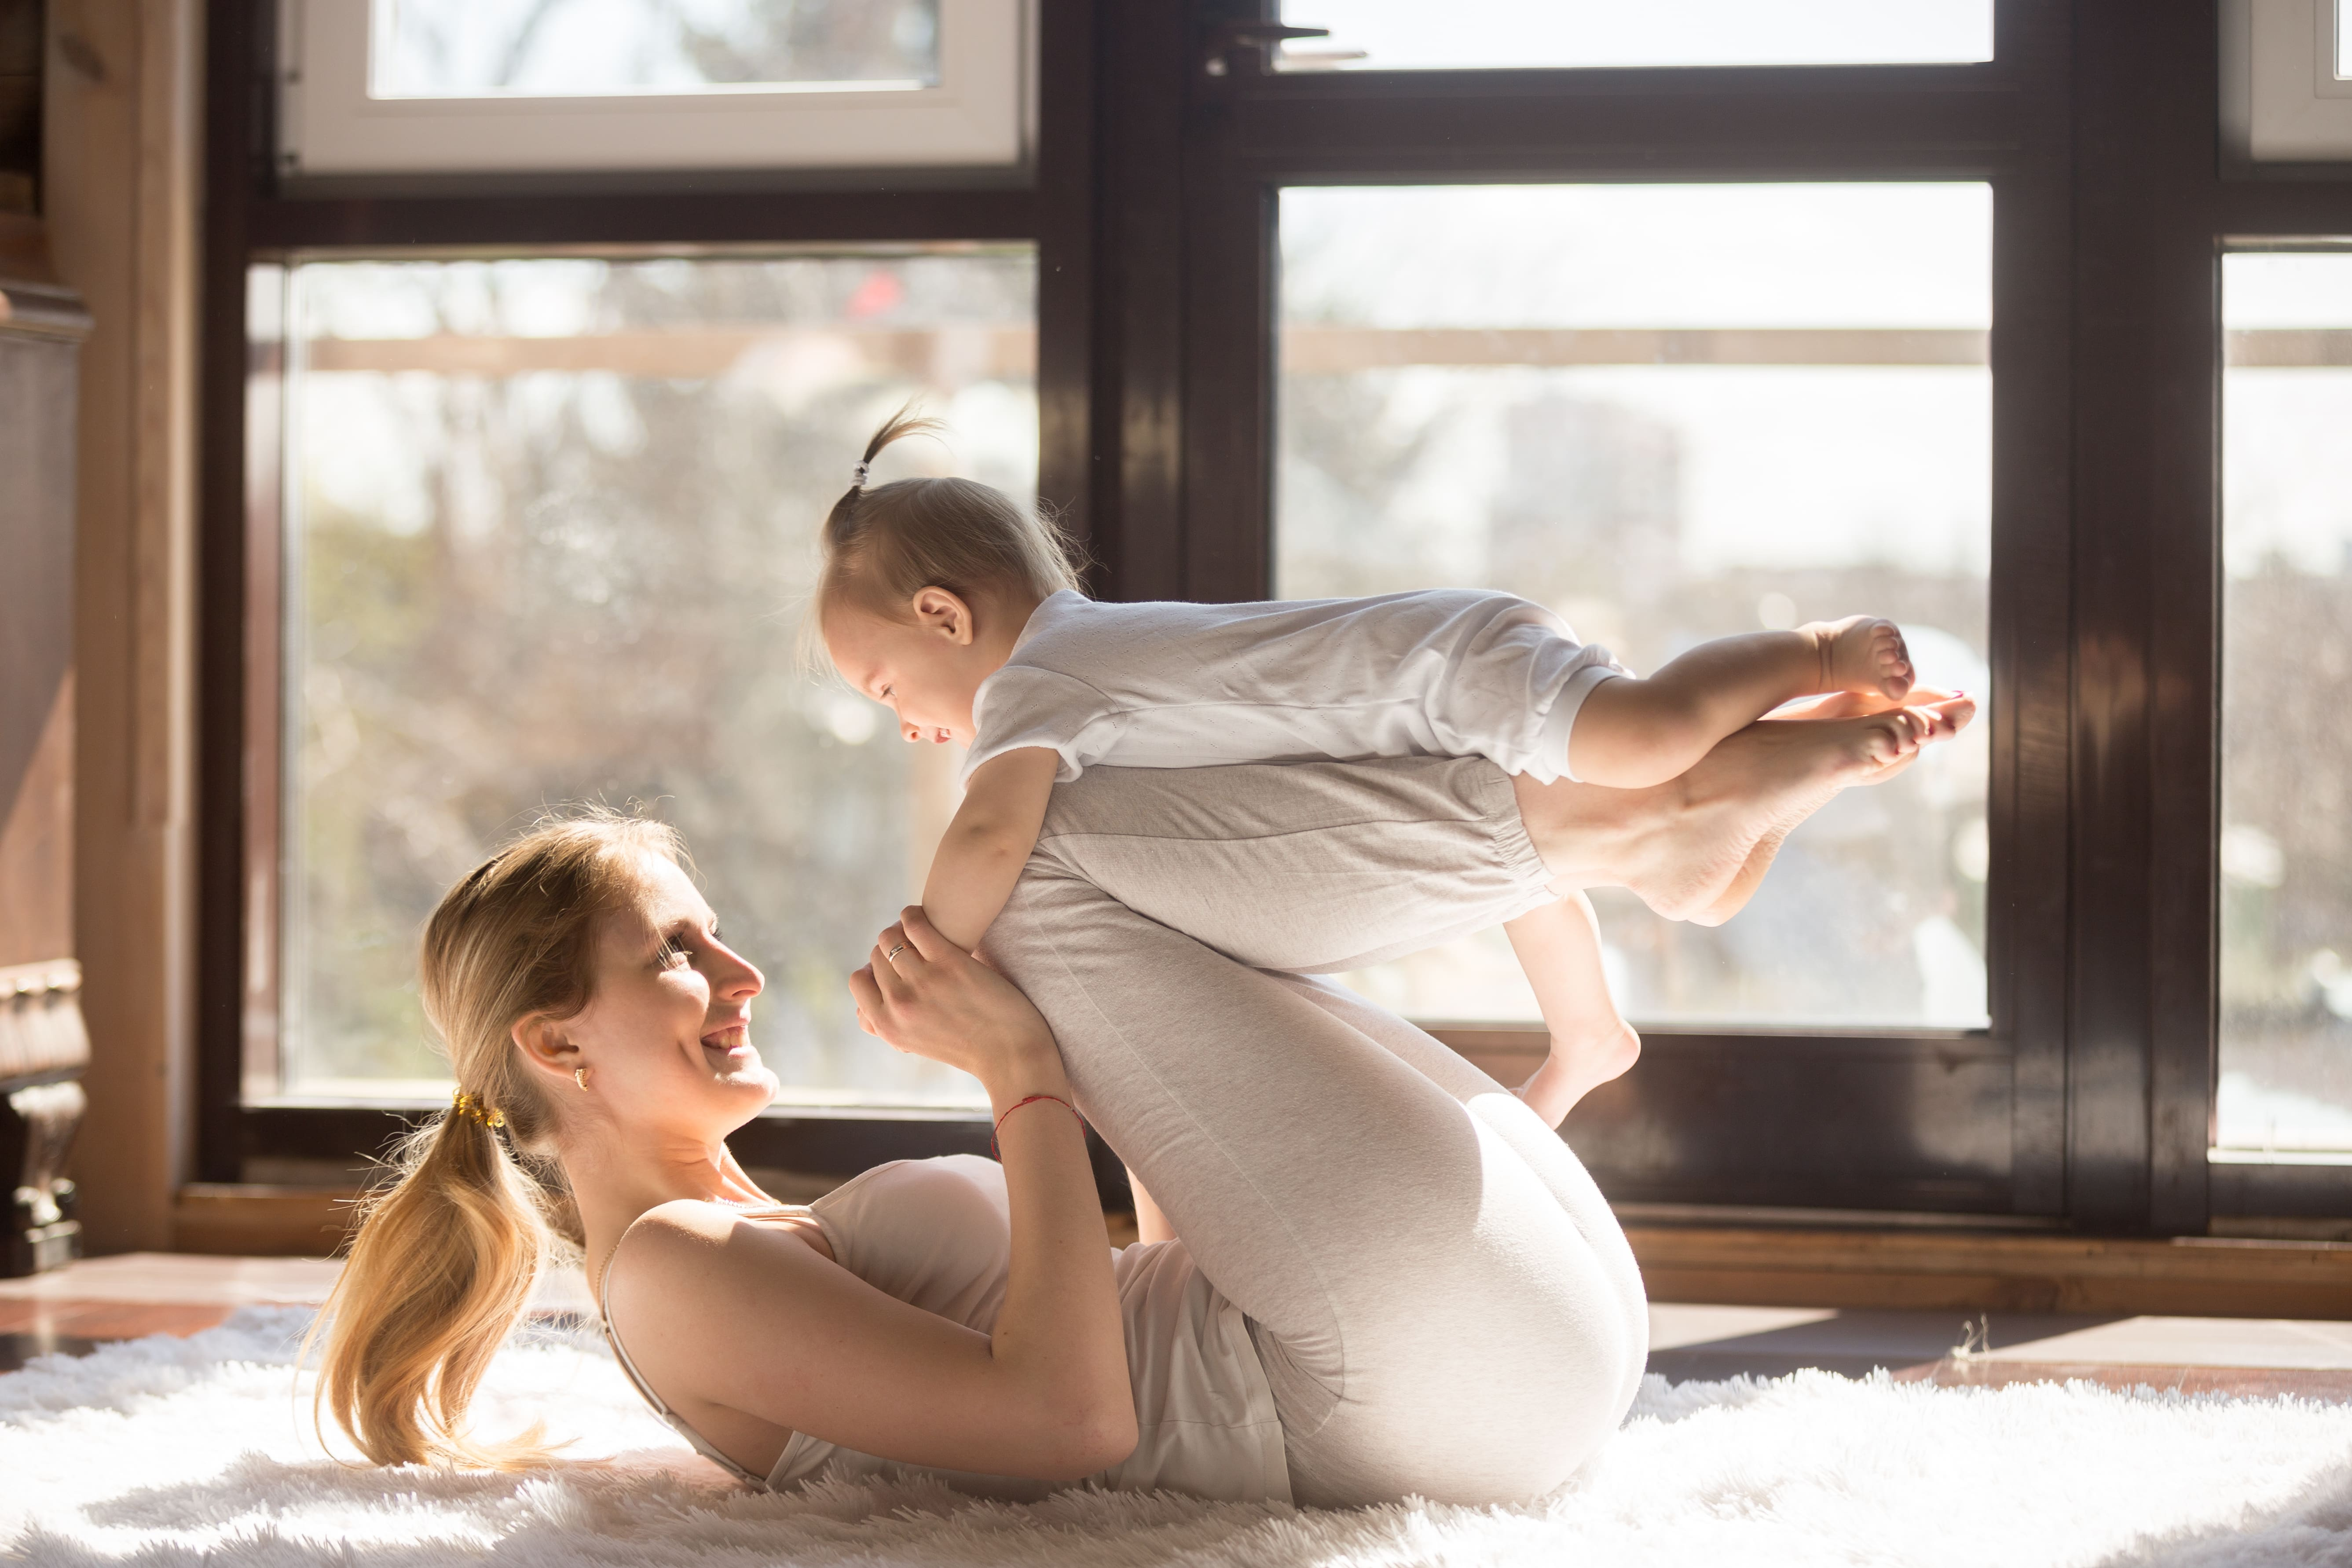 7 Fitness Tips for Super Busy Moms